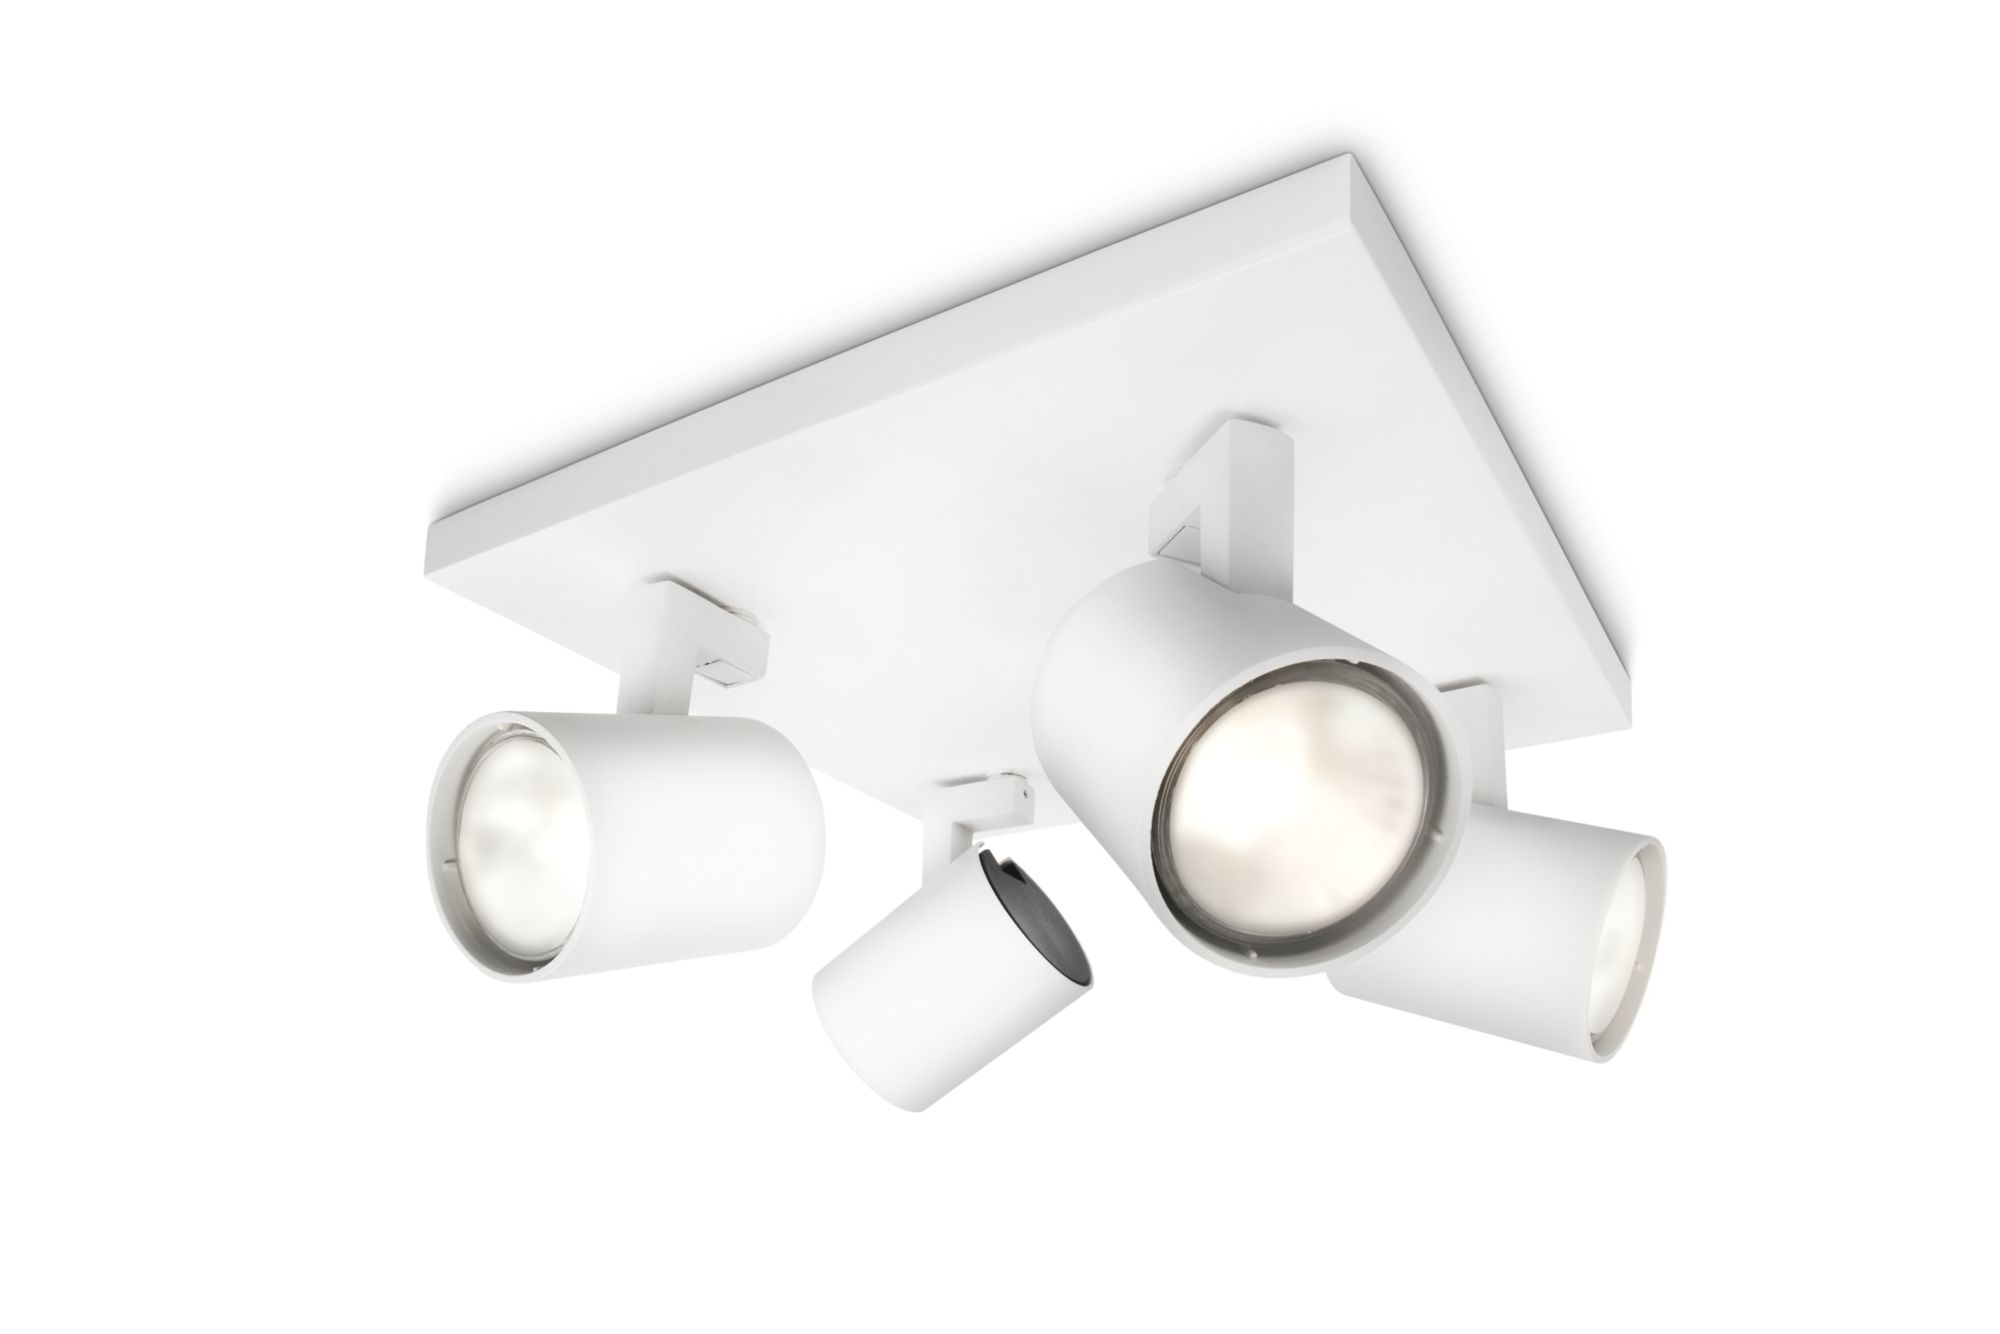 Philips Lighting - Runner 4xGU10 Bianco - 530943112